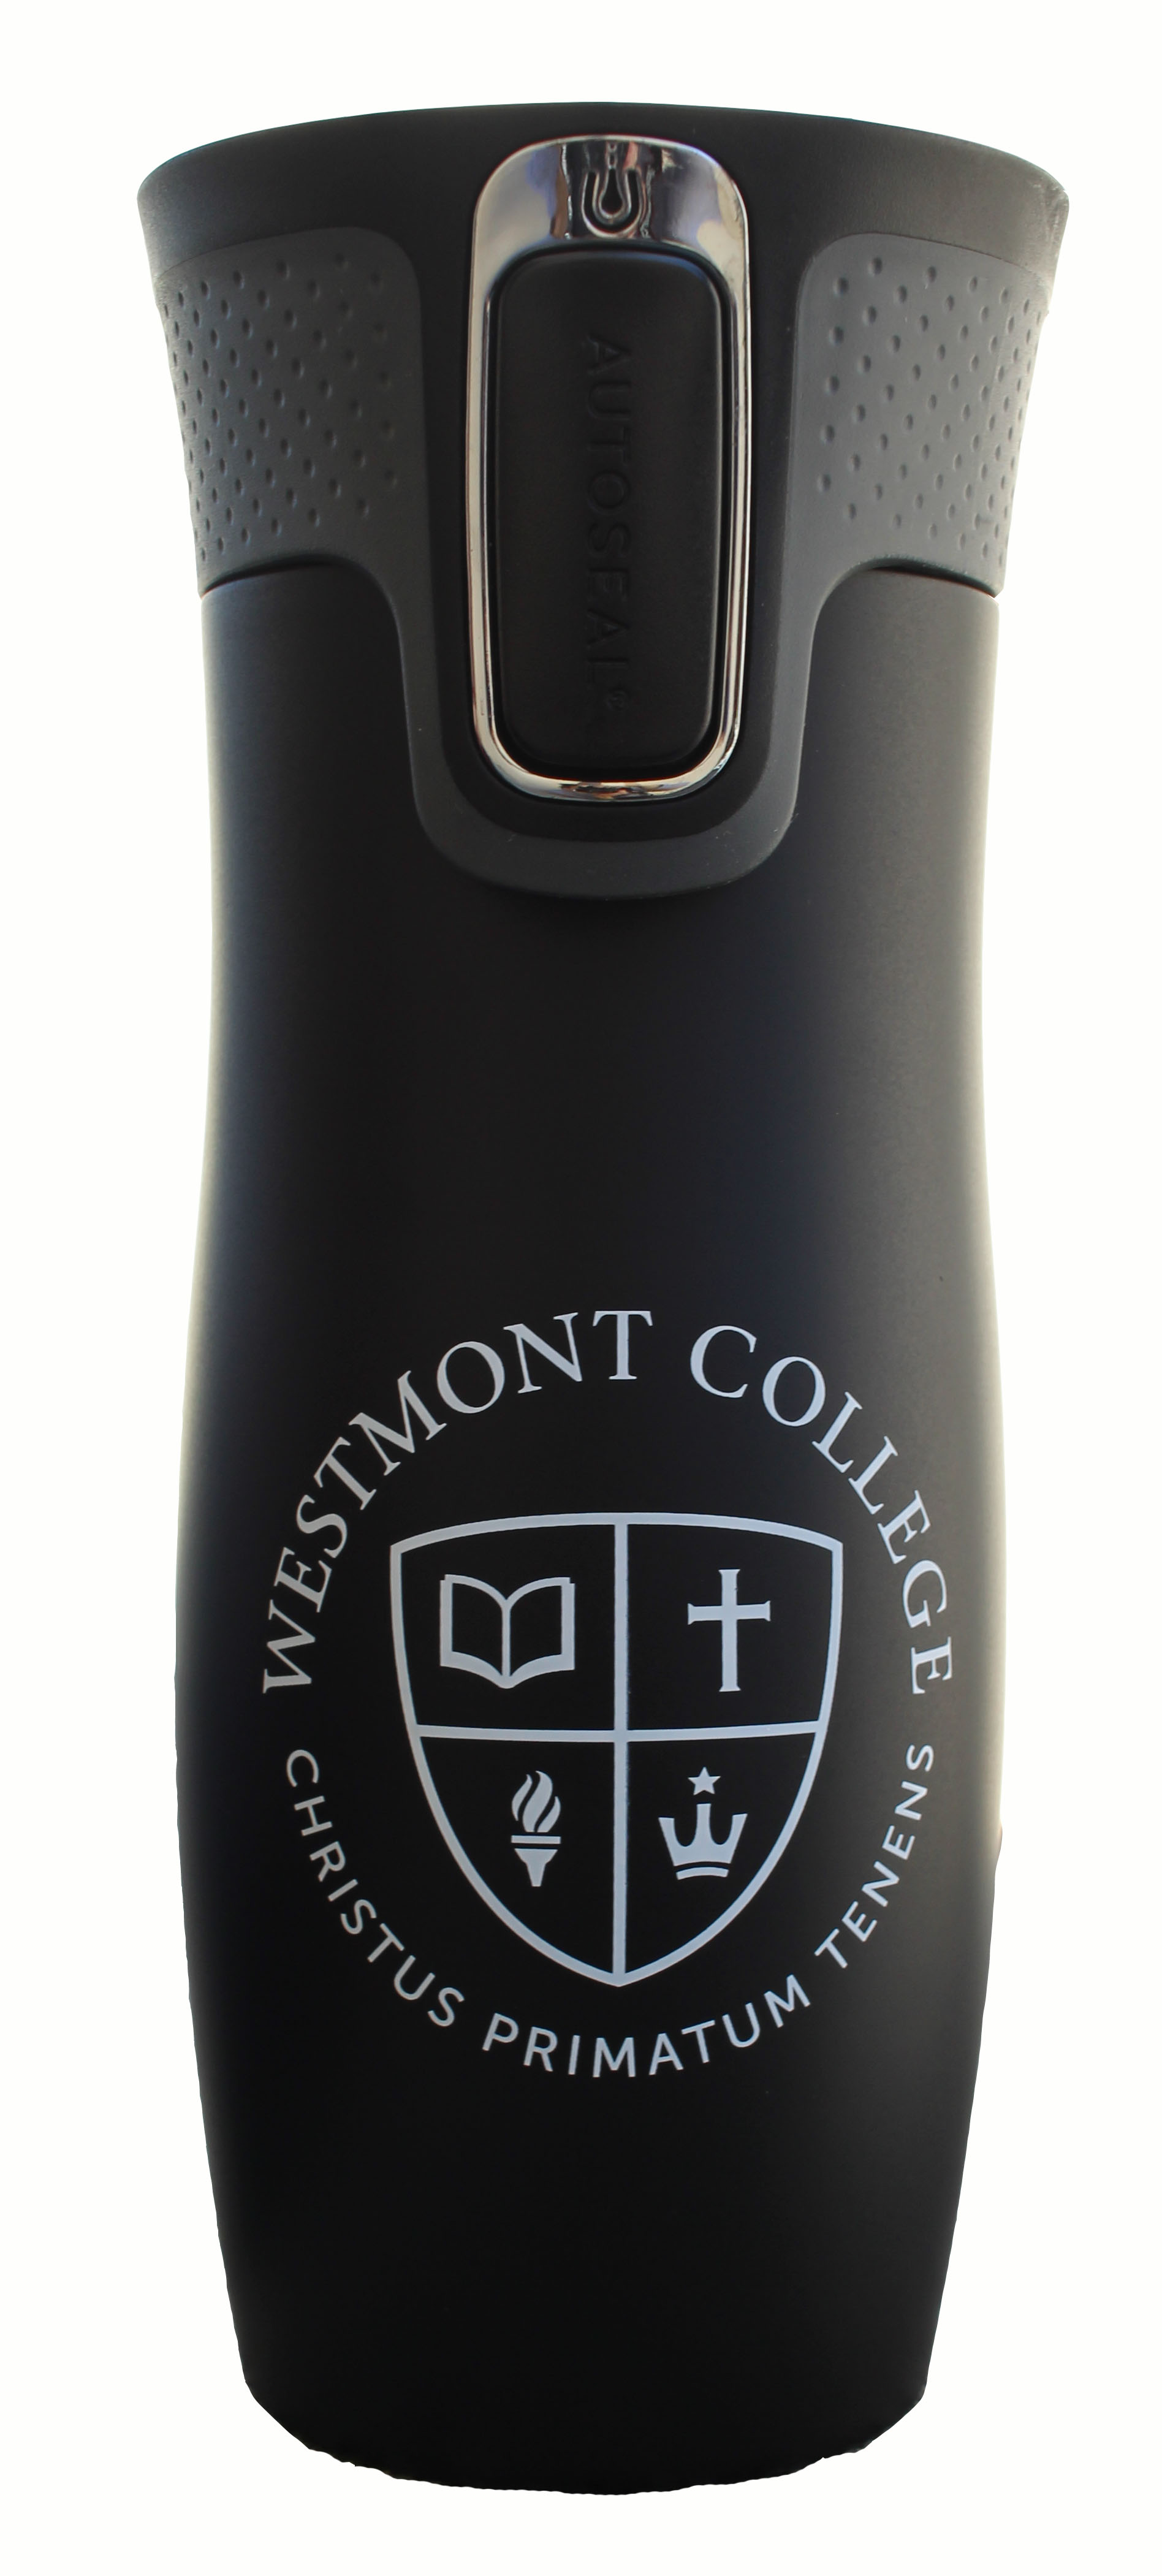 Image for the Contigo Black Westmont College Tumbler  product